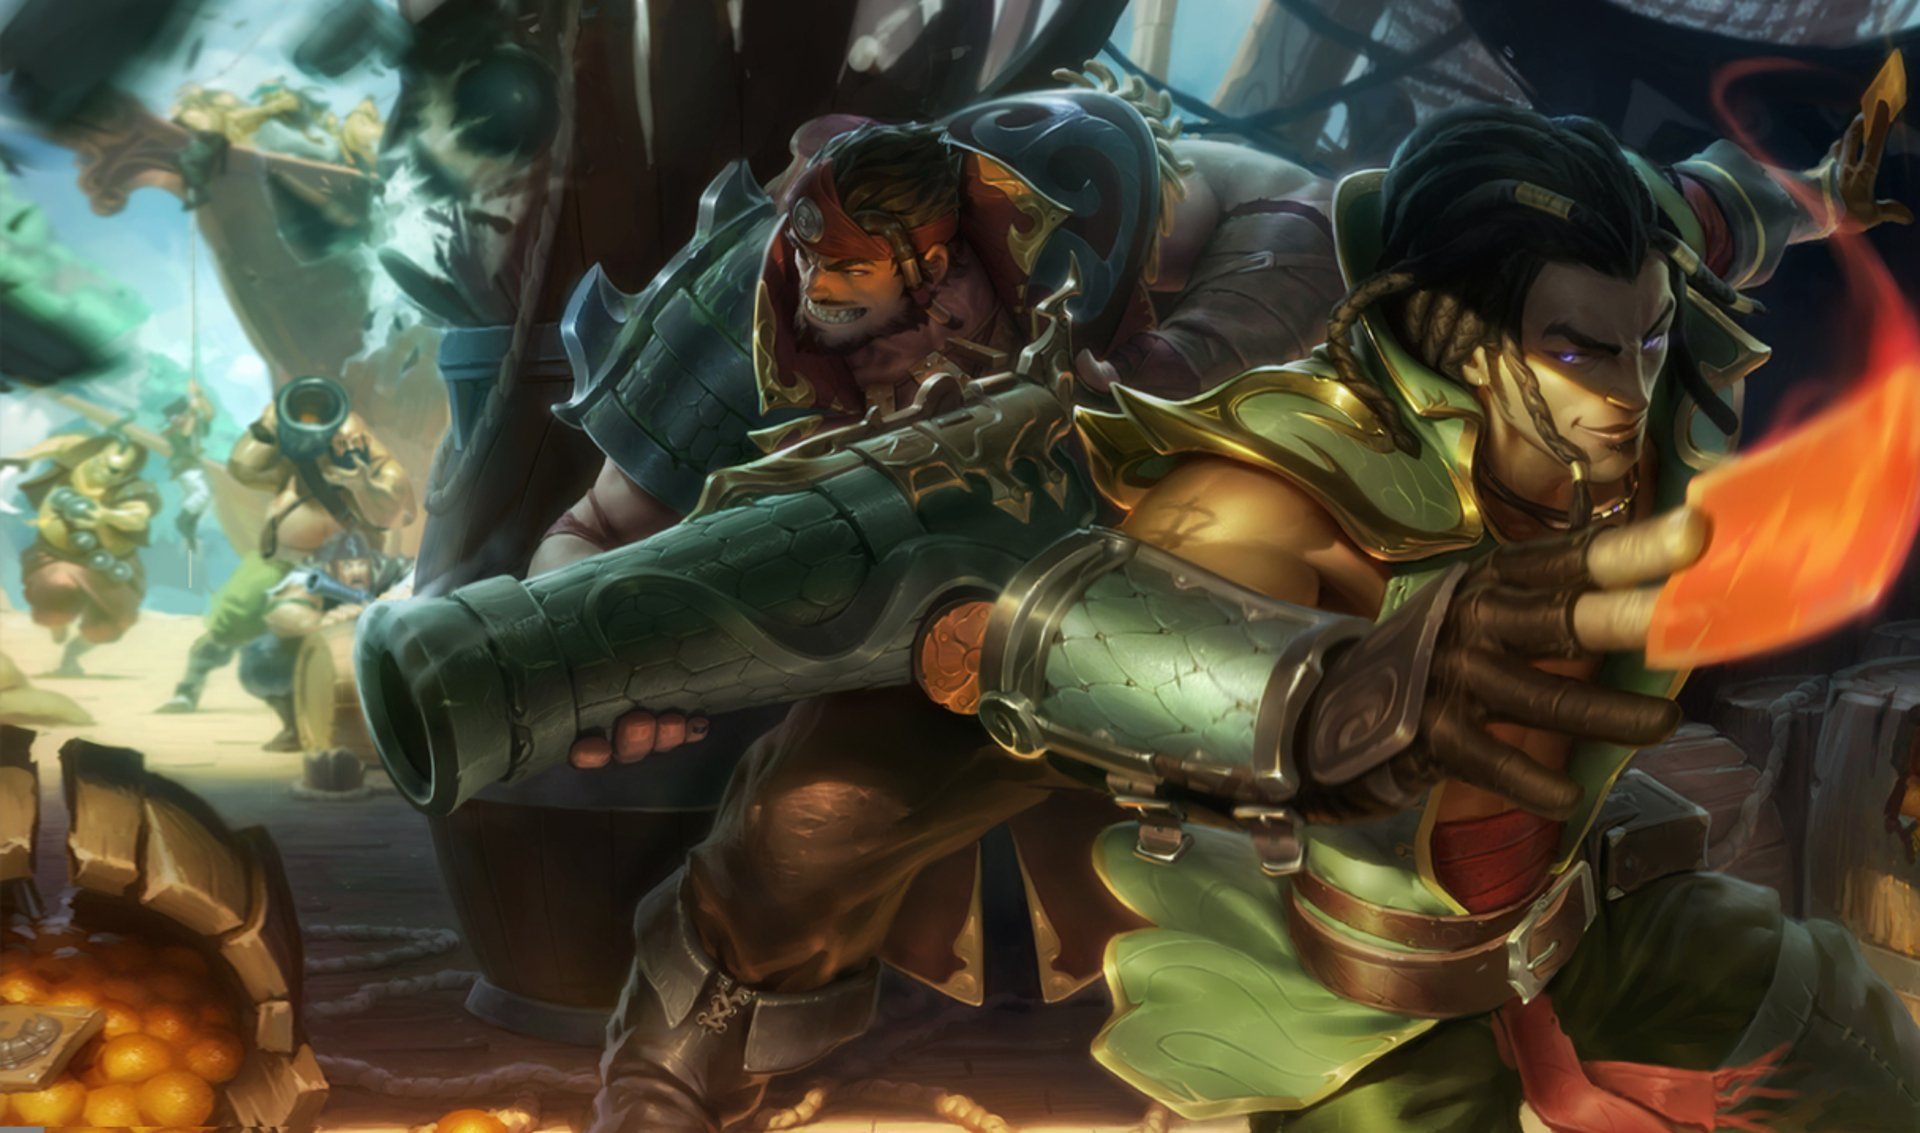 37 twisted fate league of legends hd wallpapers background hd wallpaper background image id605527 voltagebd Gallery